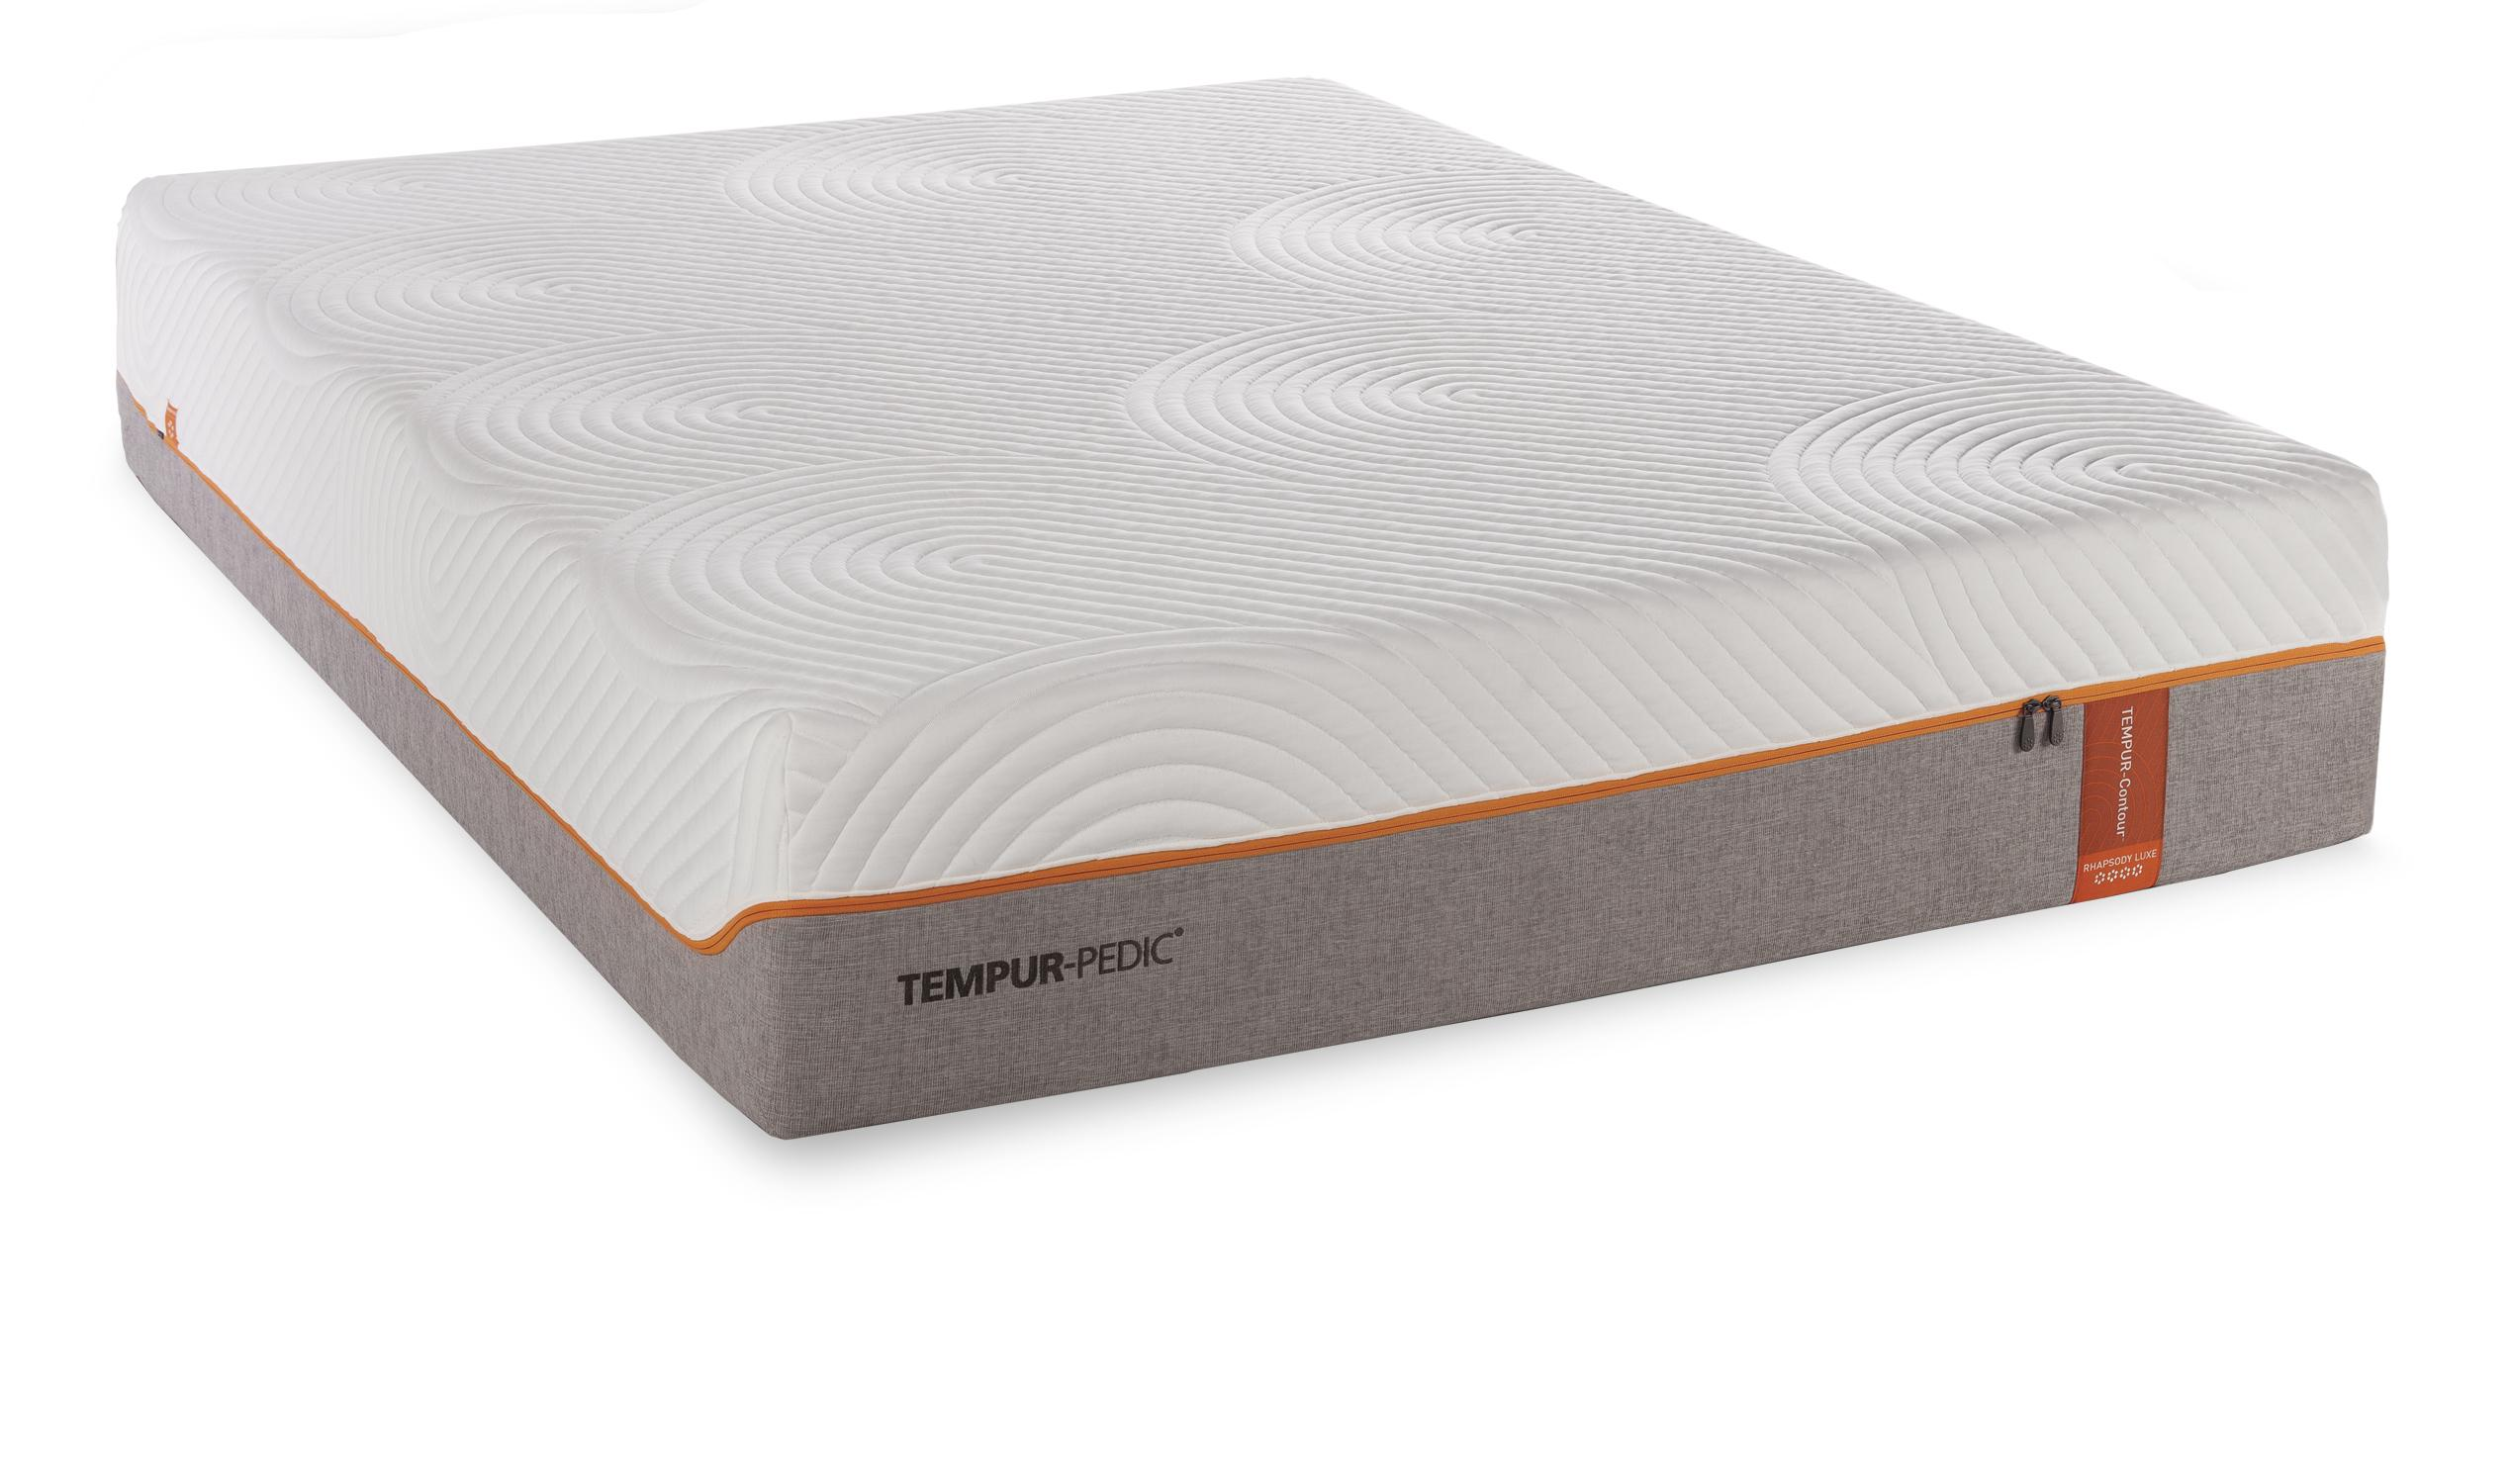 Tempur-Pedic® TEMPUR-Contour Rhapsody Luxe Twin XL Medium Firm Mattress - Item Number: 10258120